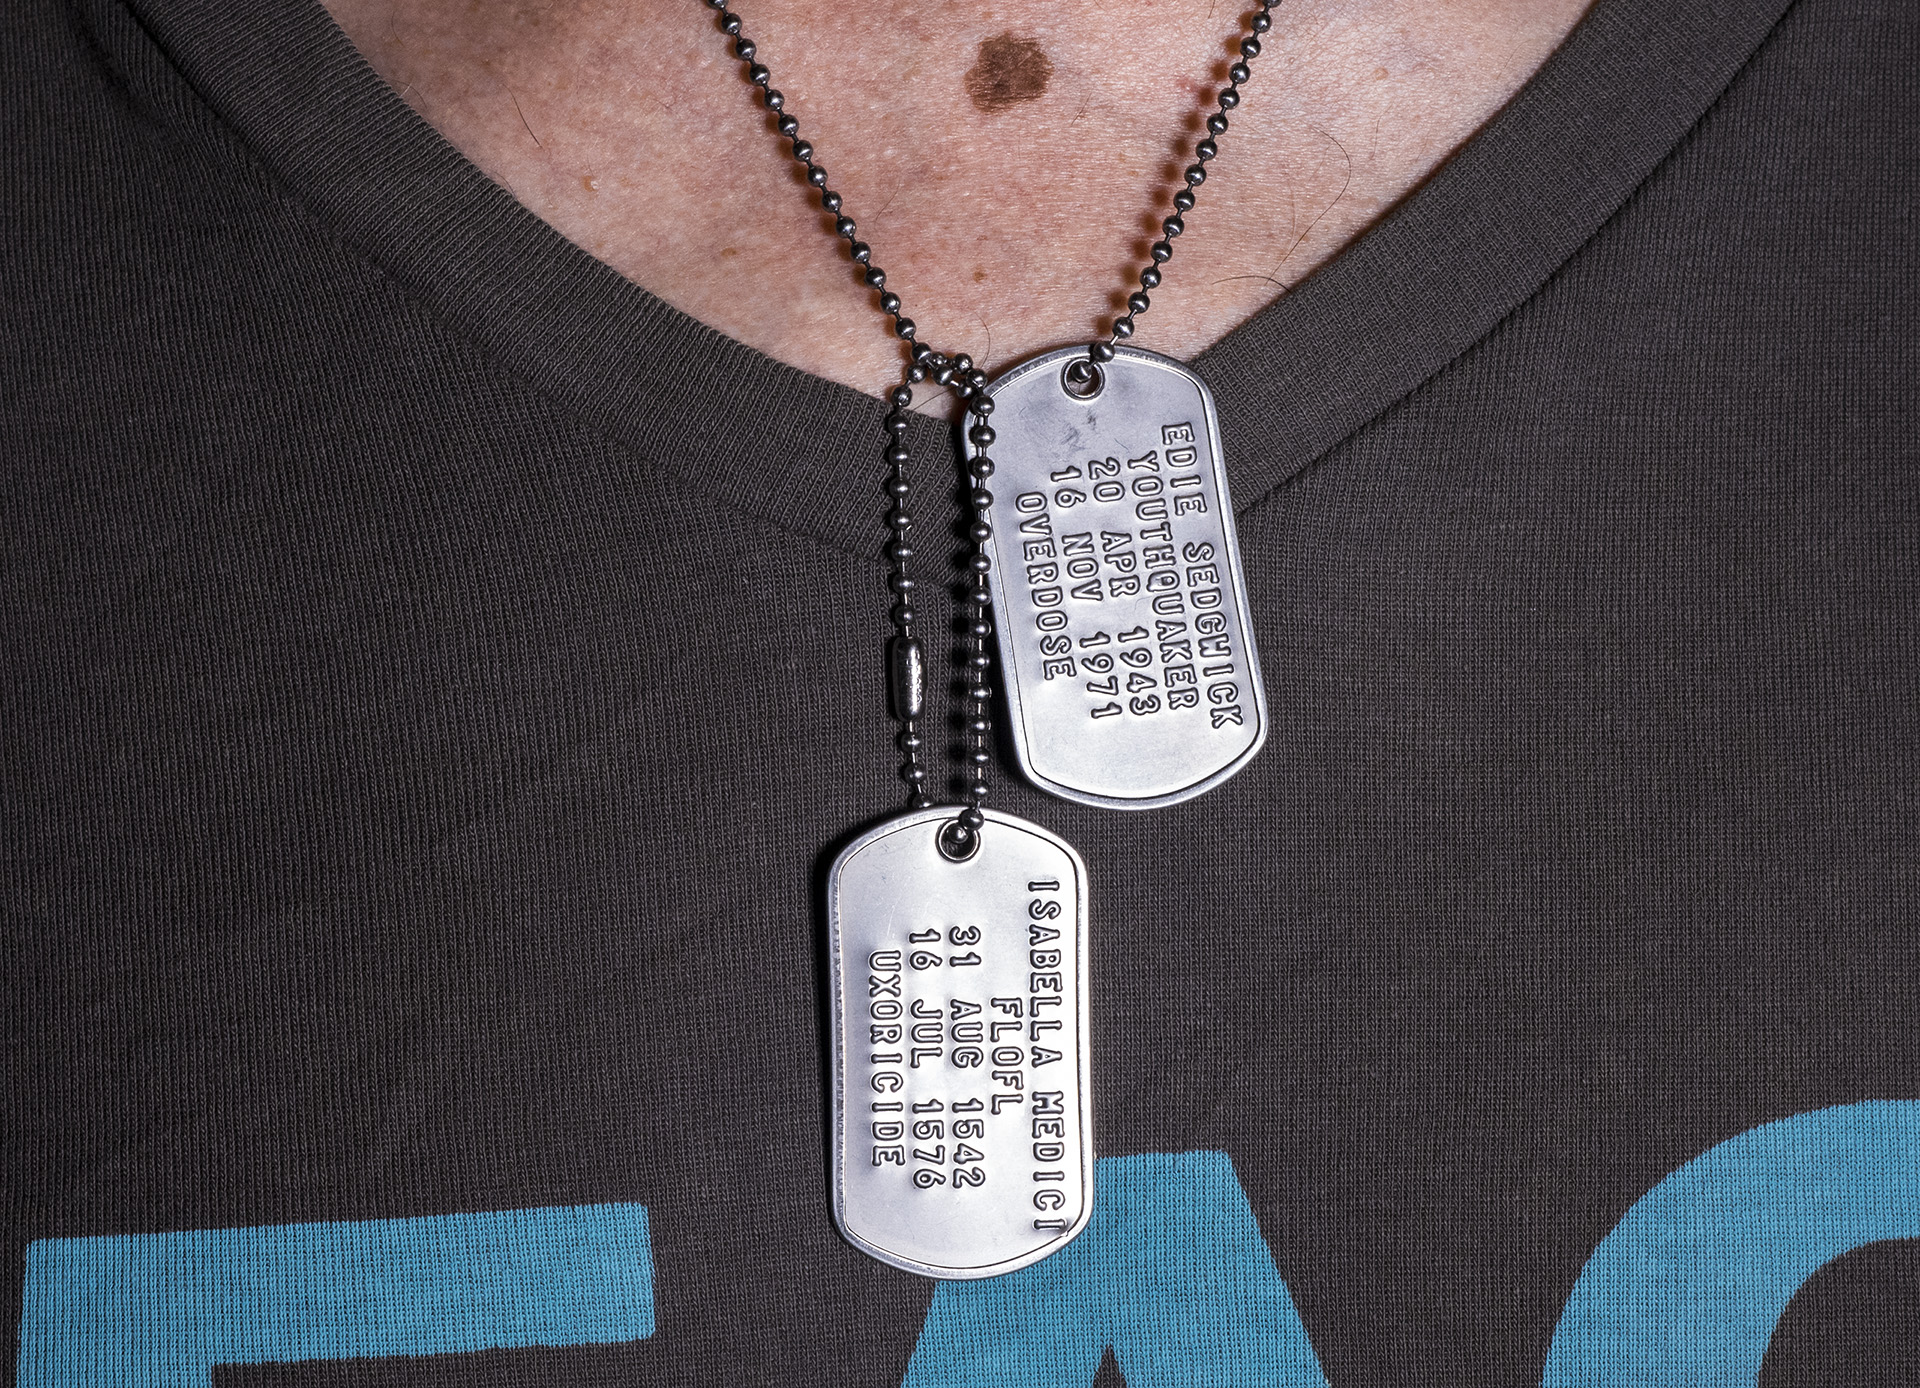 """photo of a pair of dog tags around a neck and over a v-neck t-shirt. 1st tag reads: """"Isabella Medici, FLOFL, 31 Aug 1542, 16 Jul 1576, uxoricide"""". 2nd tag reads: """"Edie Sedgwick, Youthquaker, 20 Apr 1943, 16 Nov 1971, overdose""""."""